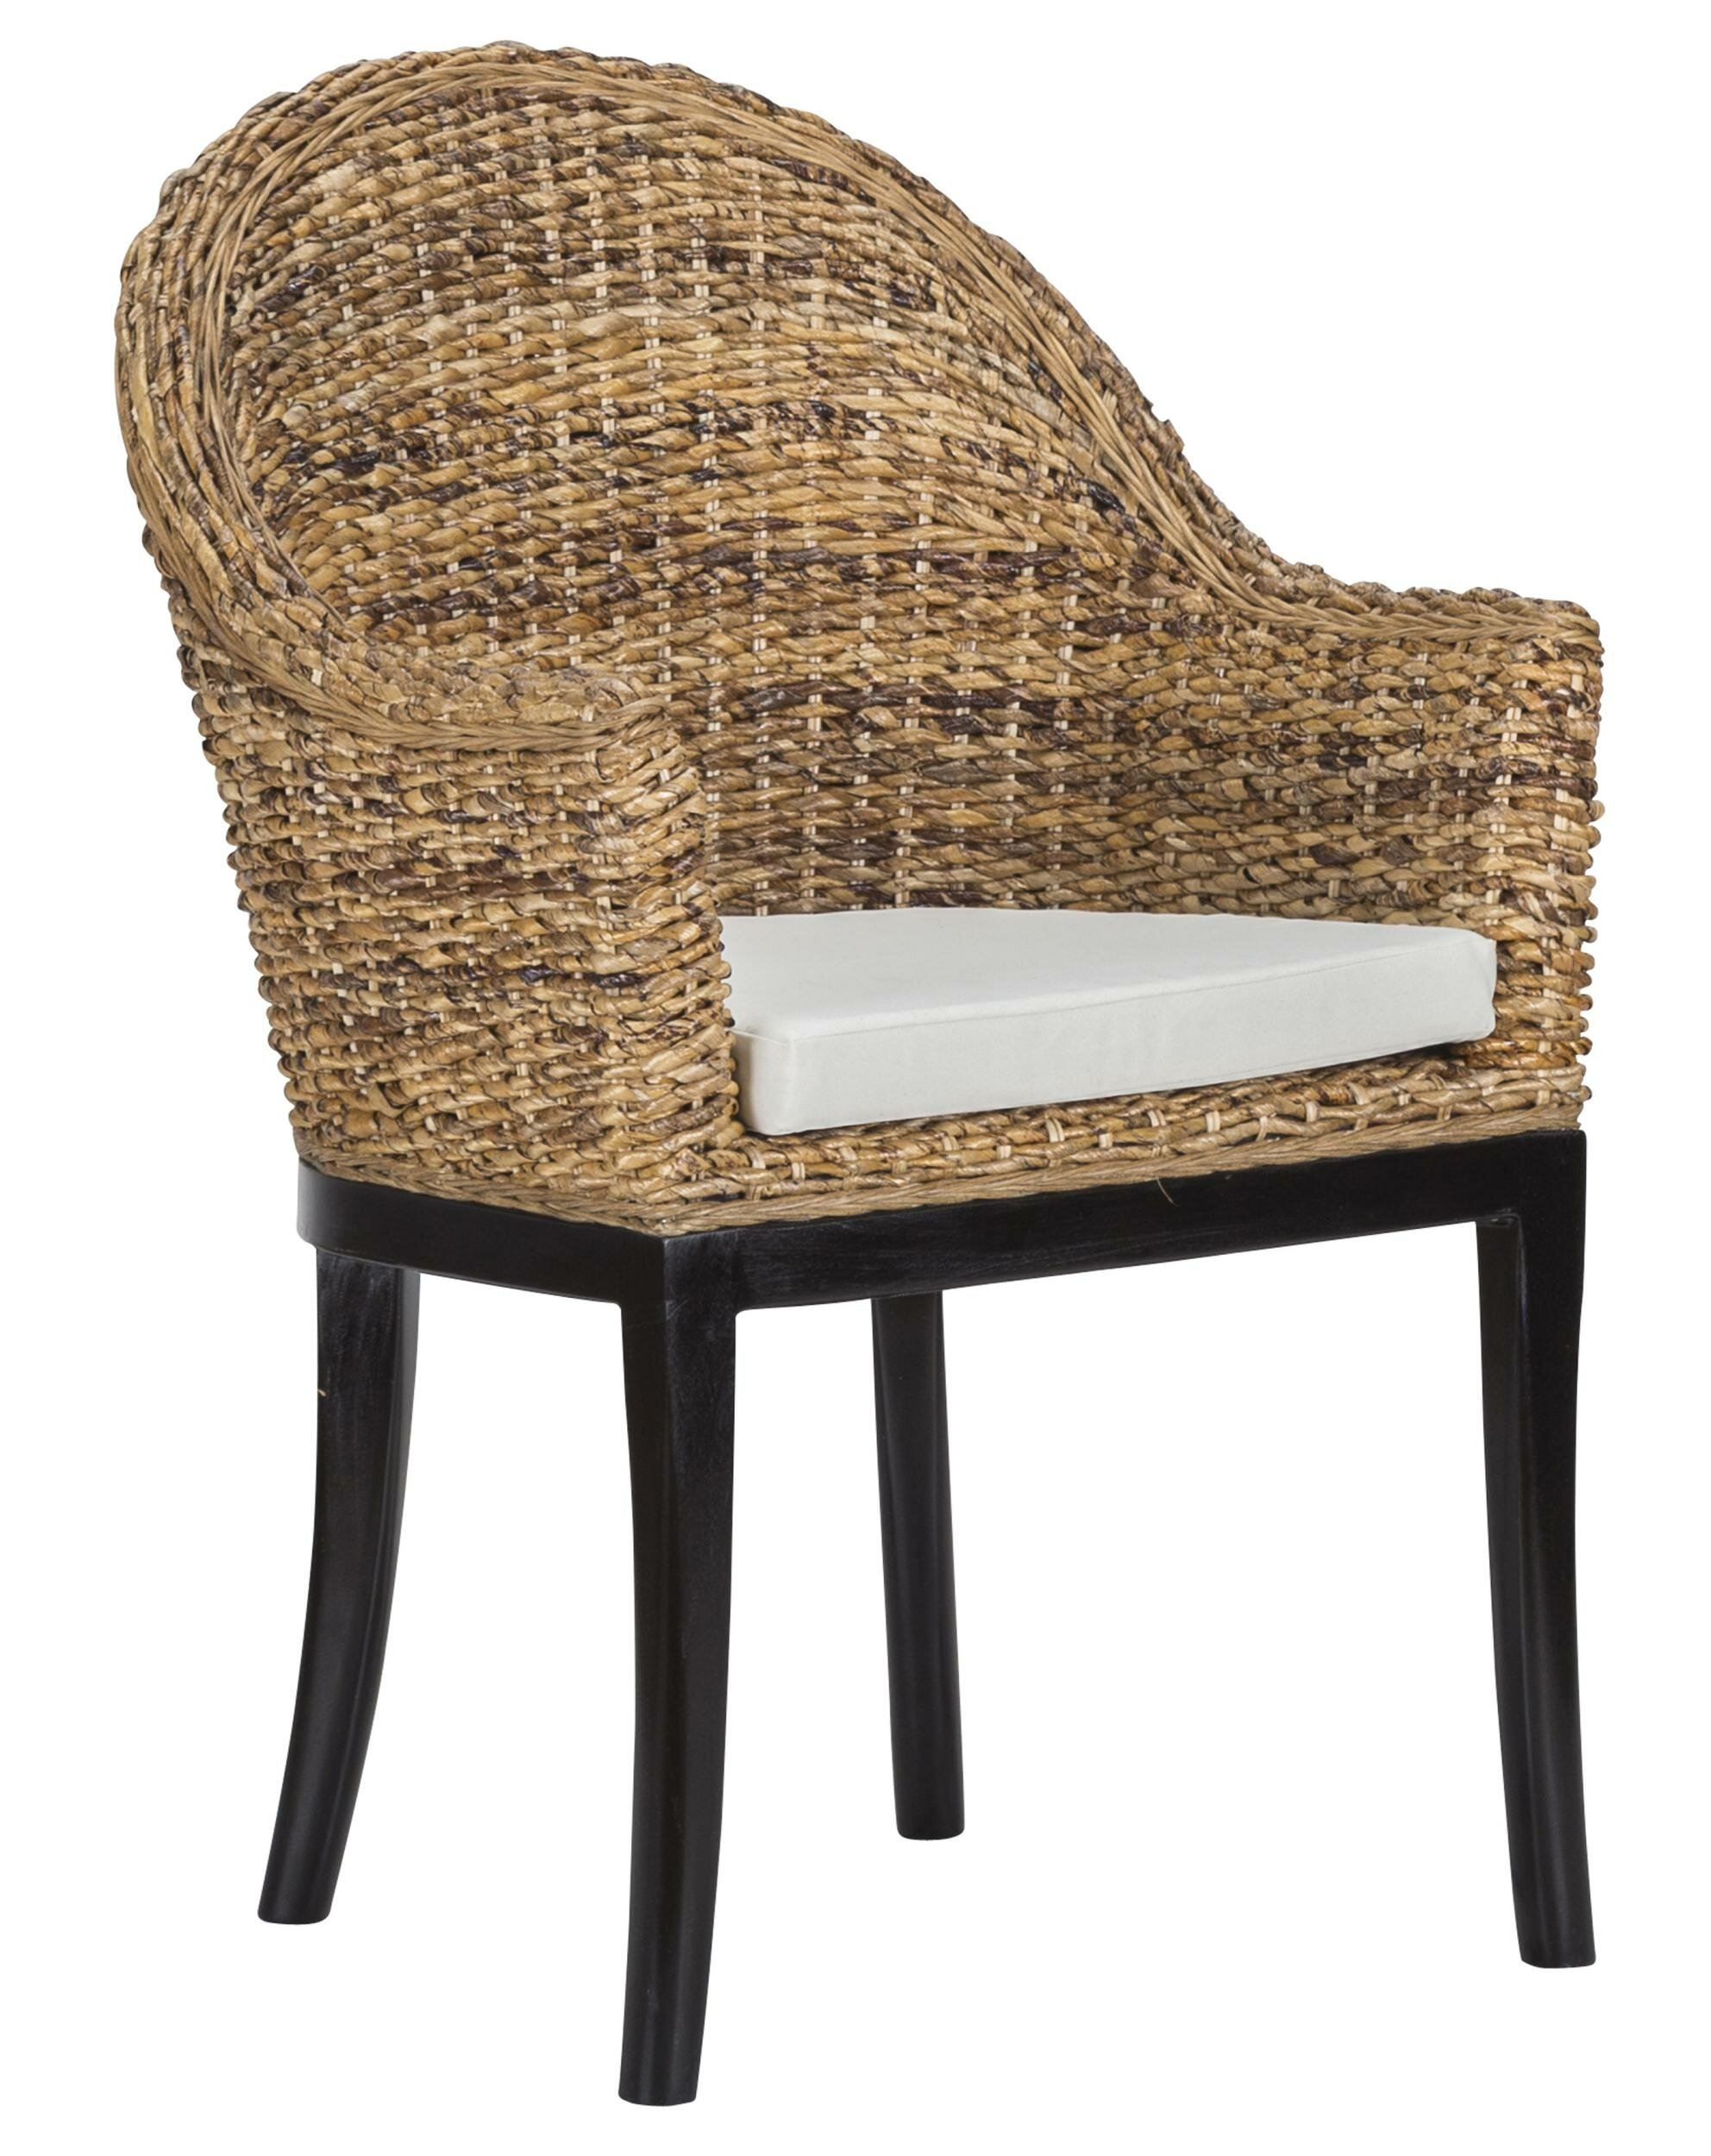 Caldwell Armchair With Caldwell Armchairs (View 9 of 15)